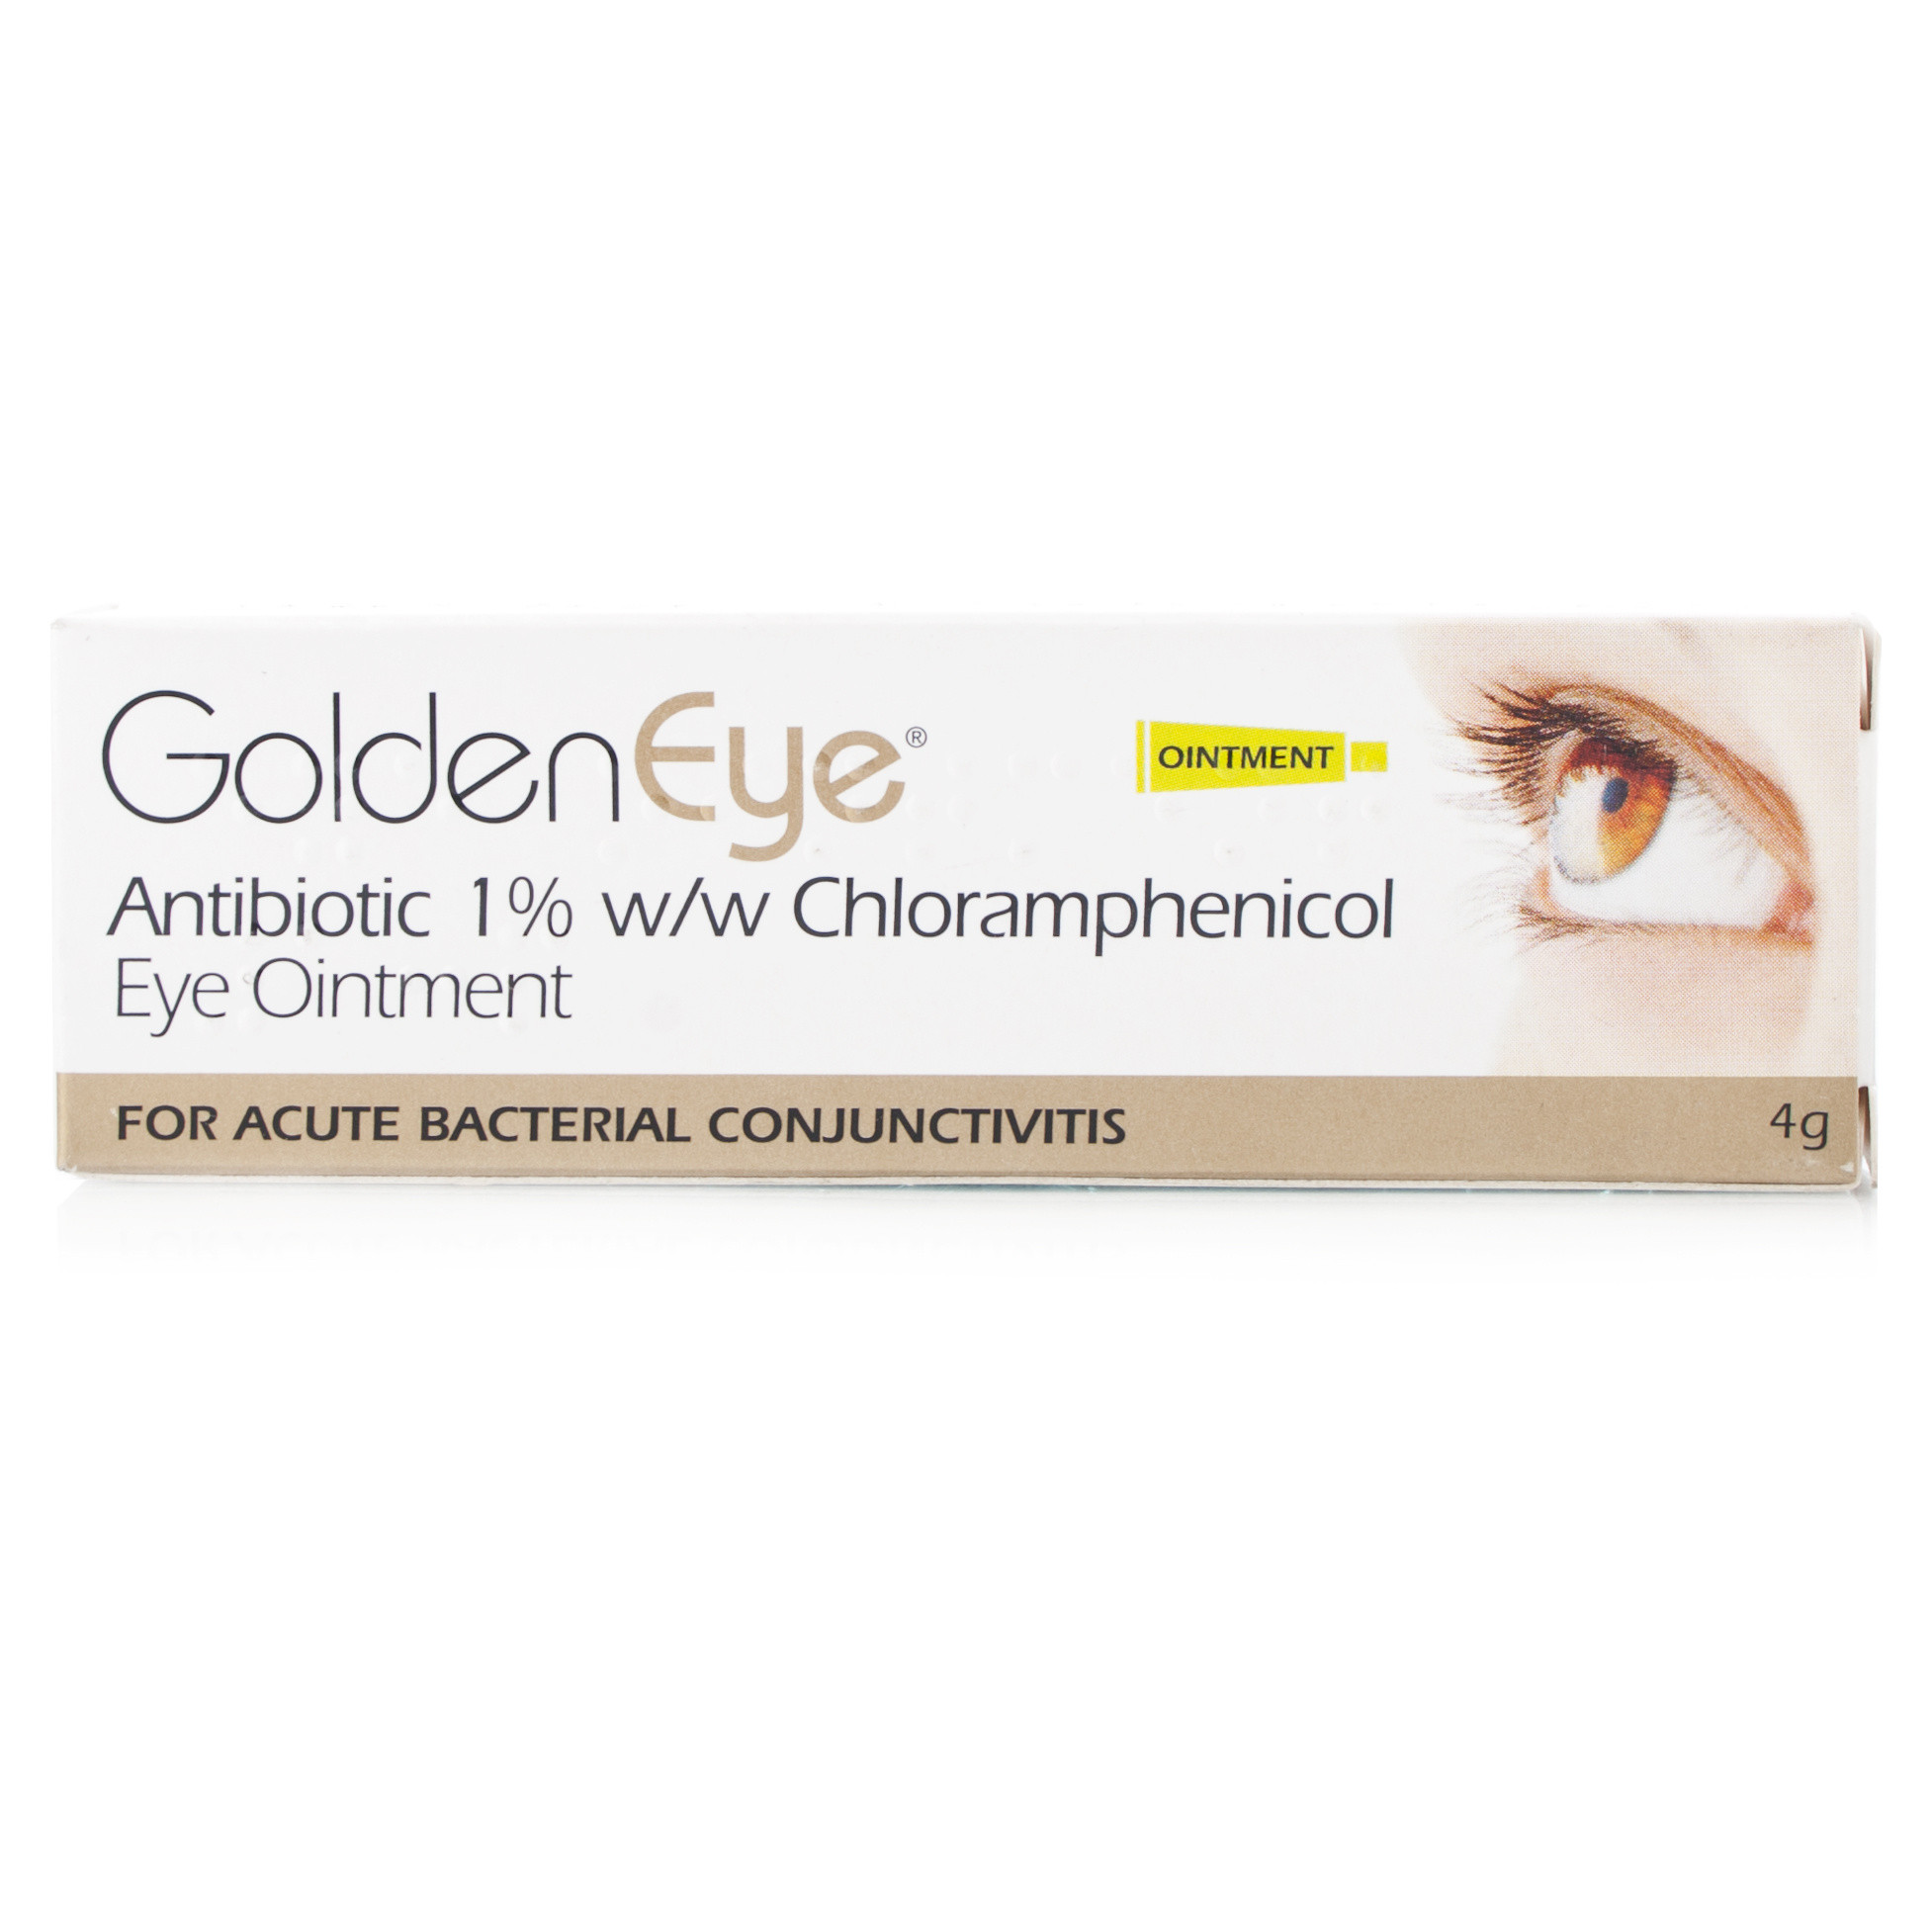 Golden Eye Chloramphenicol Eye Ointment